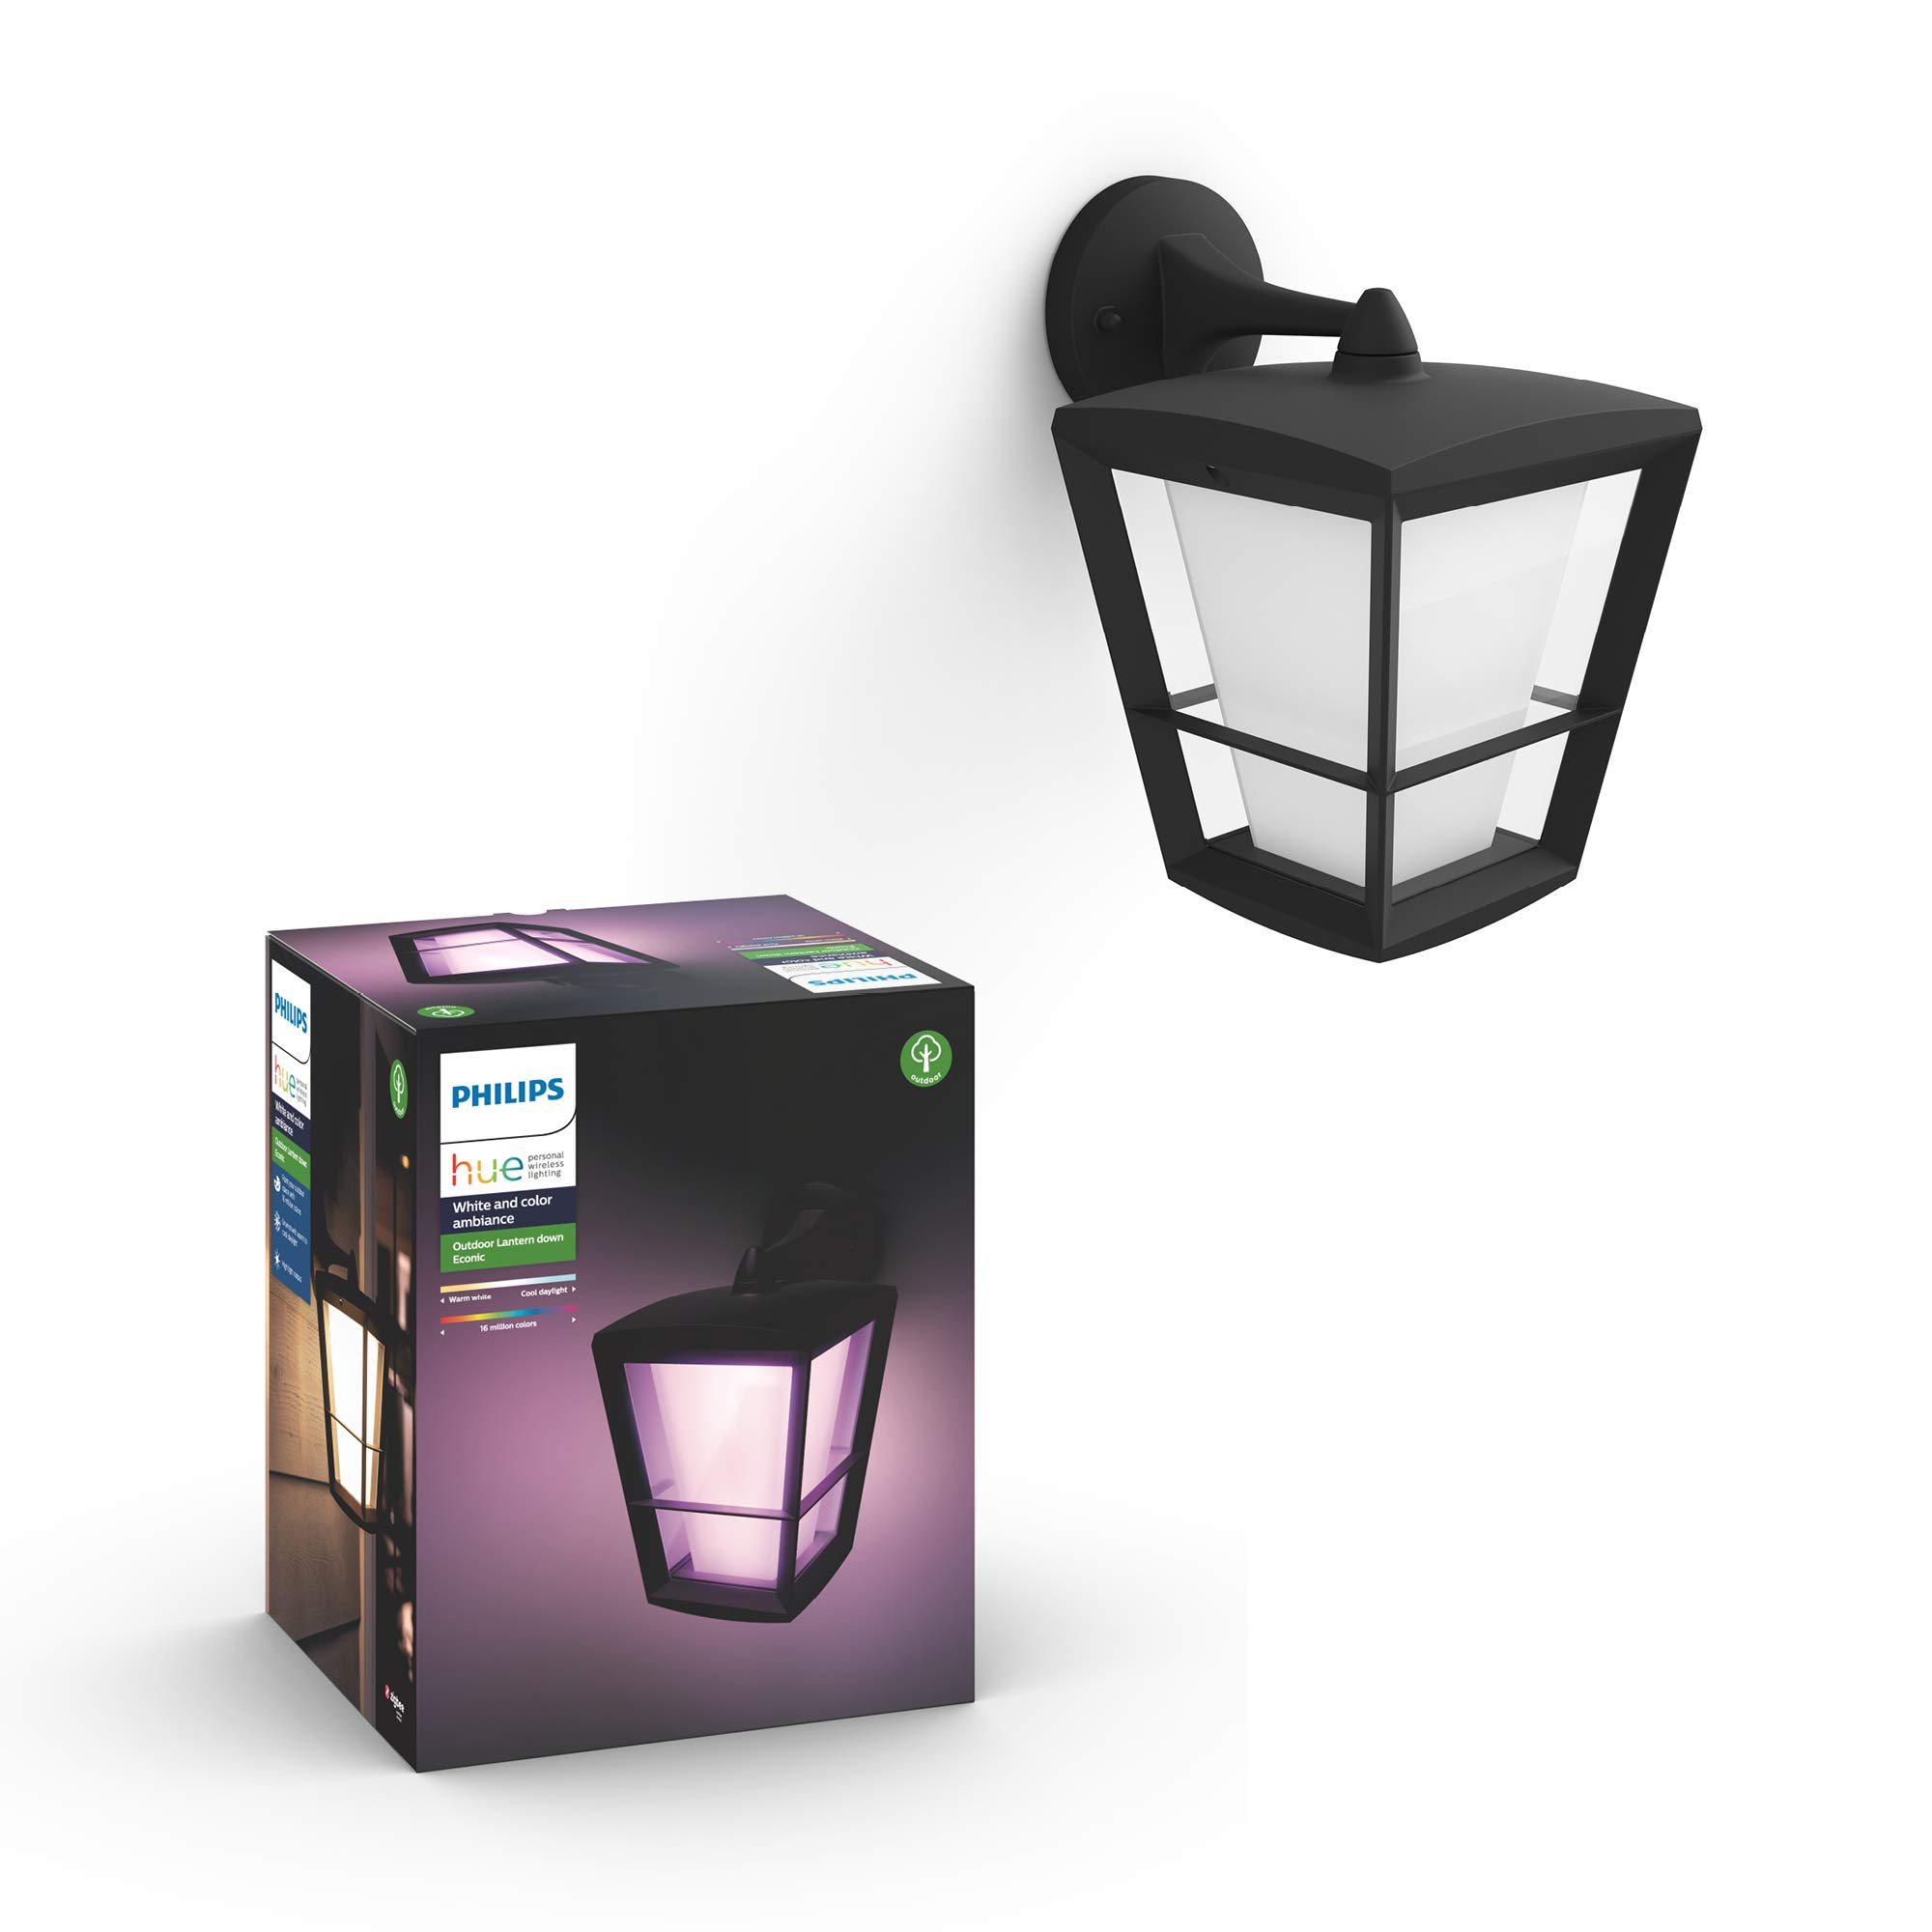 Philips Hue Econic Smart Outdoor White & Color Wall Lantern, Down (Hue Hub Required, Smart Light Works with Alexa, Apple Homekit & Google Assistant) by Philips Hue